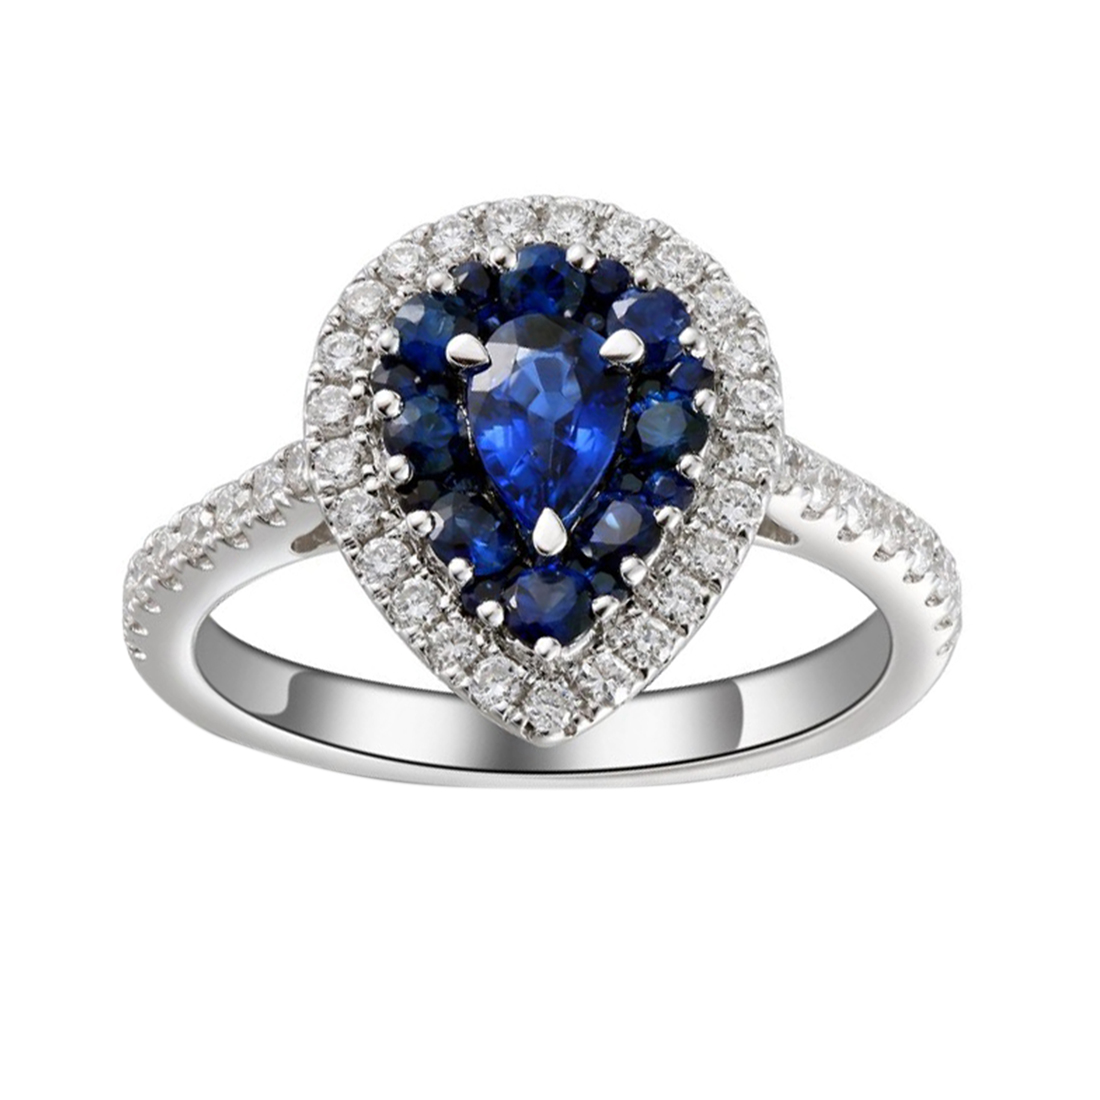 "Image of ""Greg Ruth 18K White Gold Sapphire & Diamond Ring Size 6.5"""